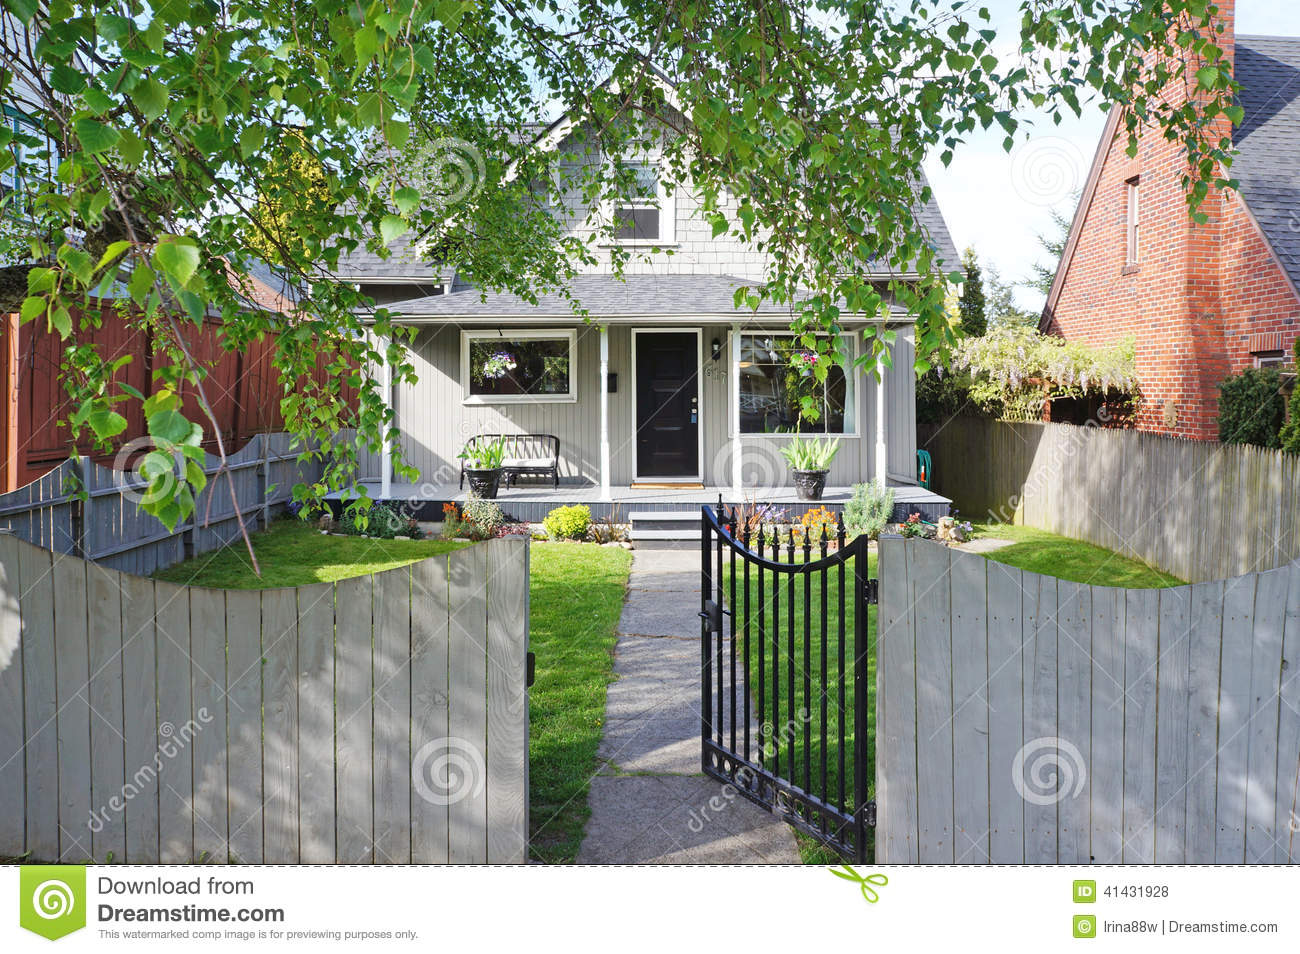 House Exterior Entrance Porch And Front Yard View Stock Photo Image Of Porch House 41431928